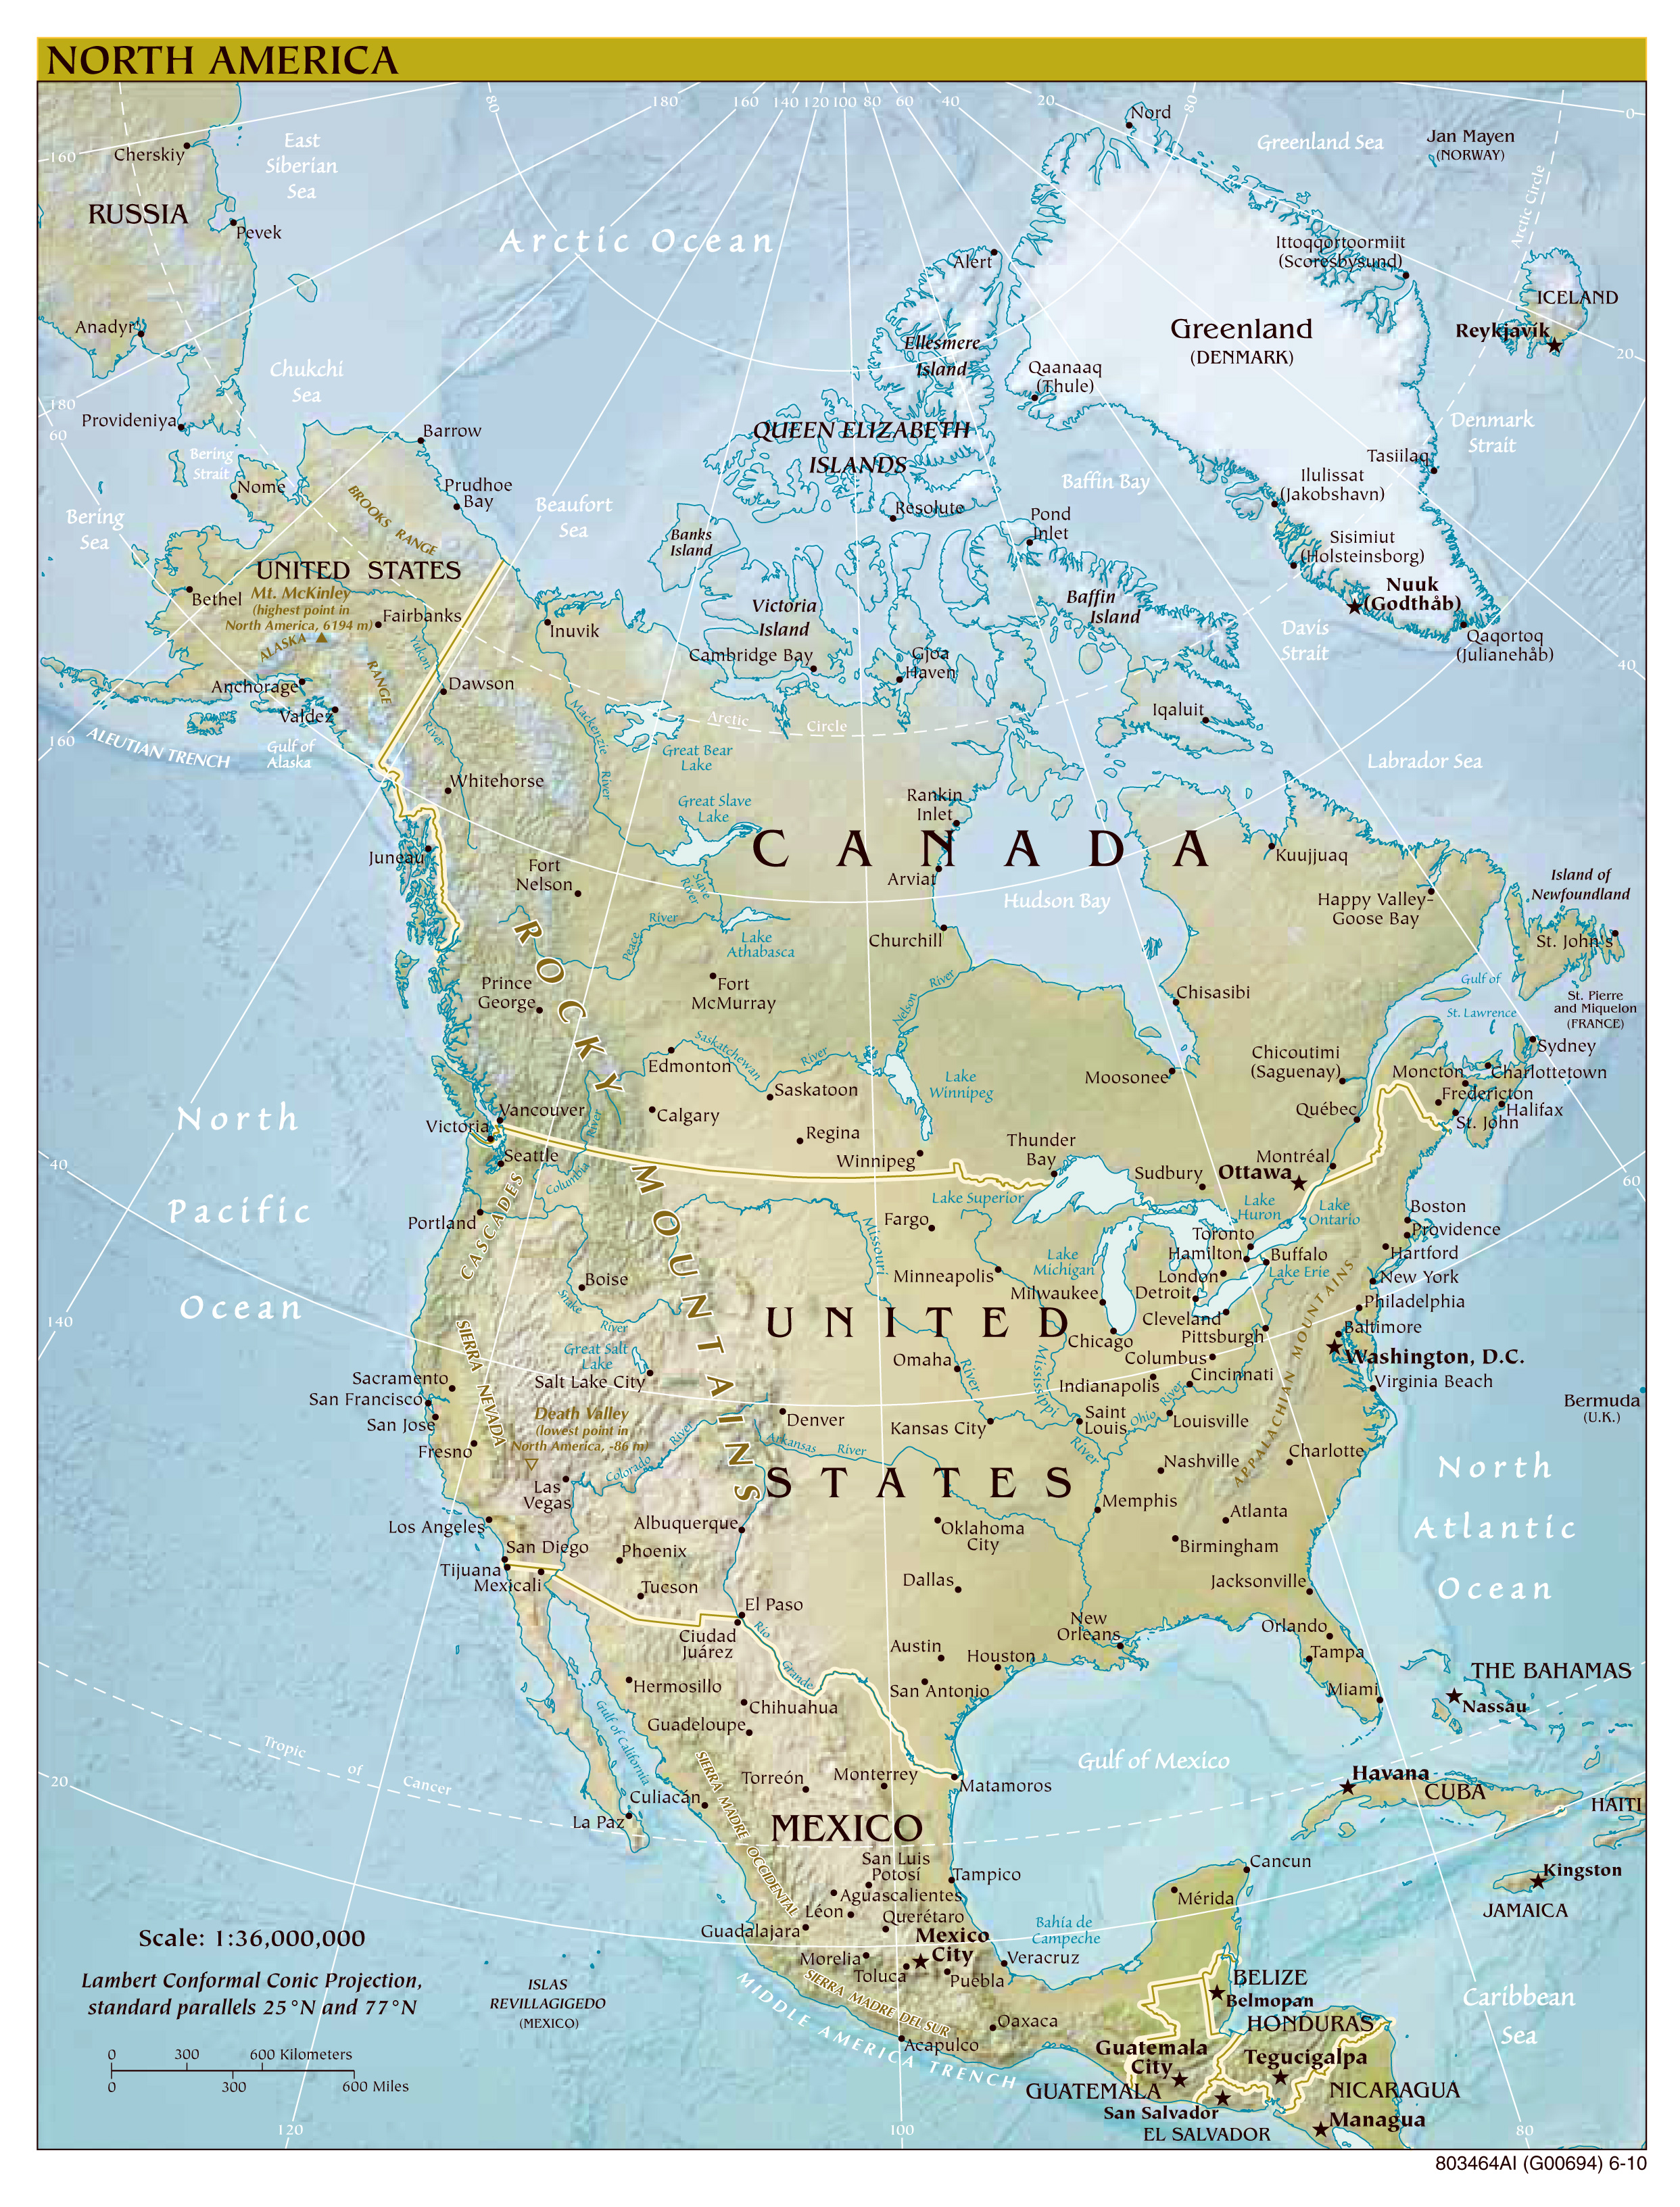 Maps of North America and North American countries | Political maps ...